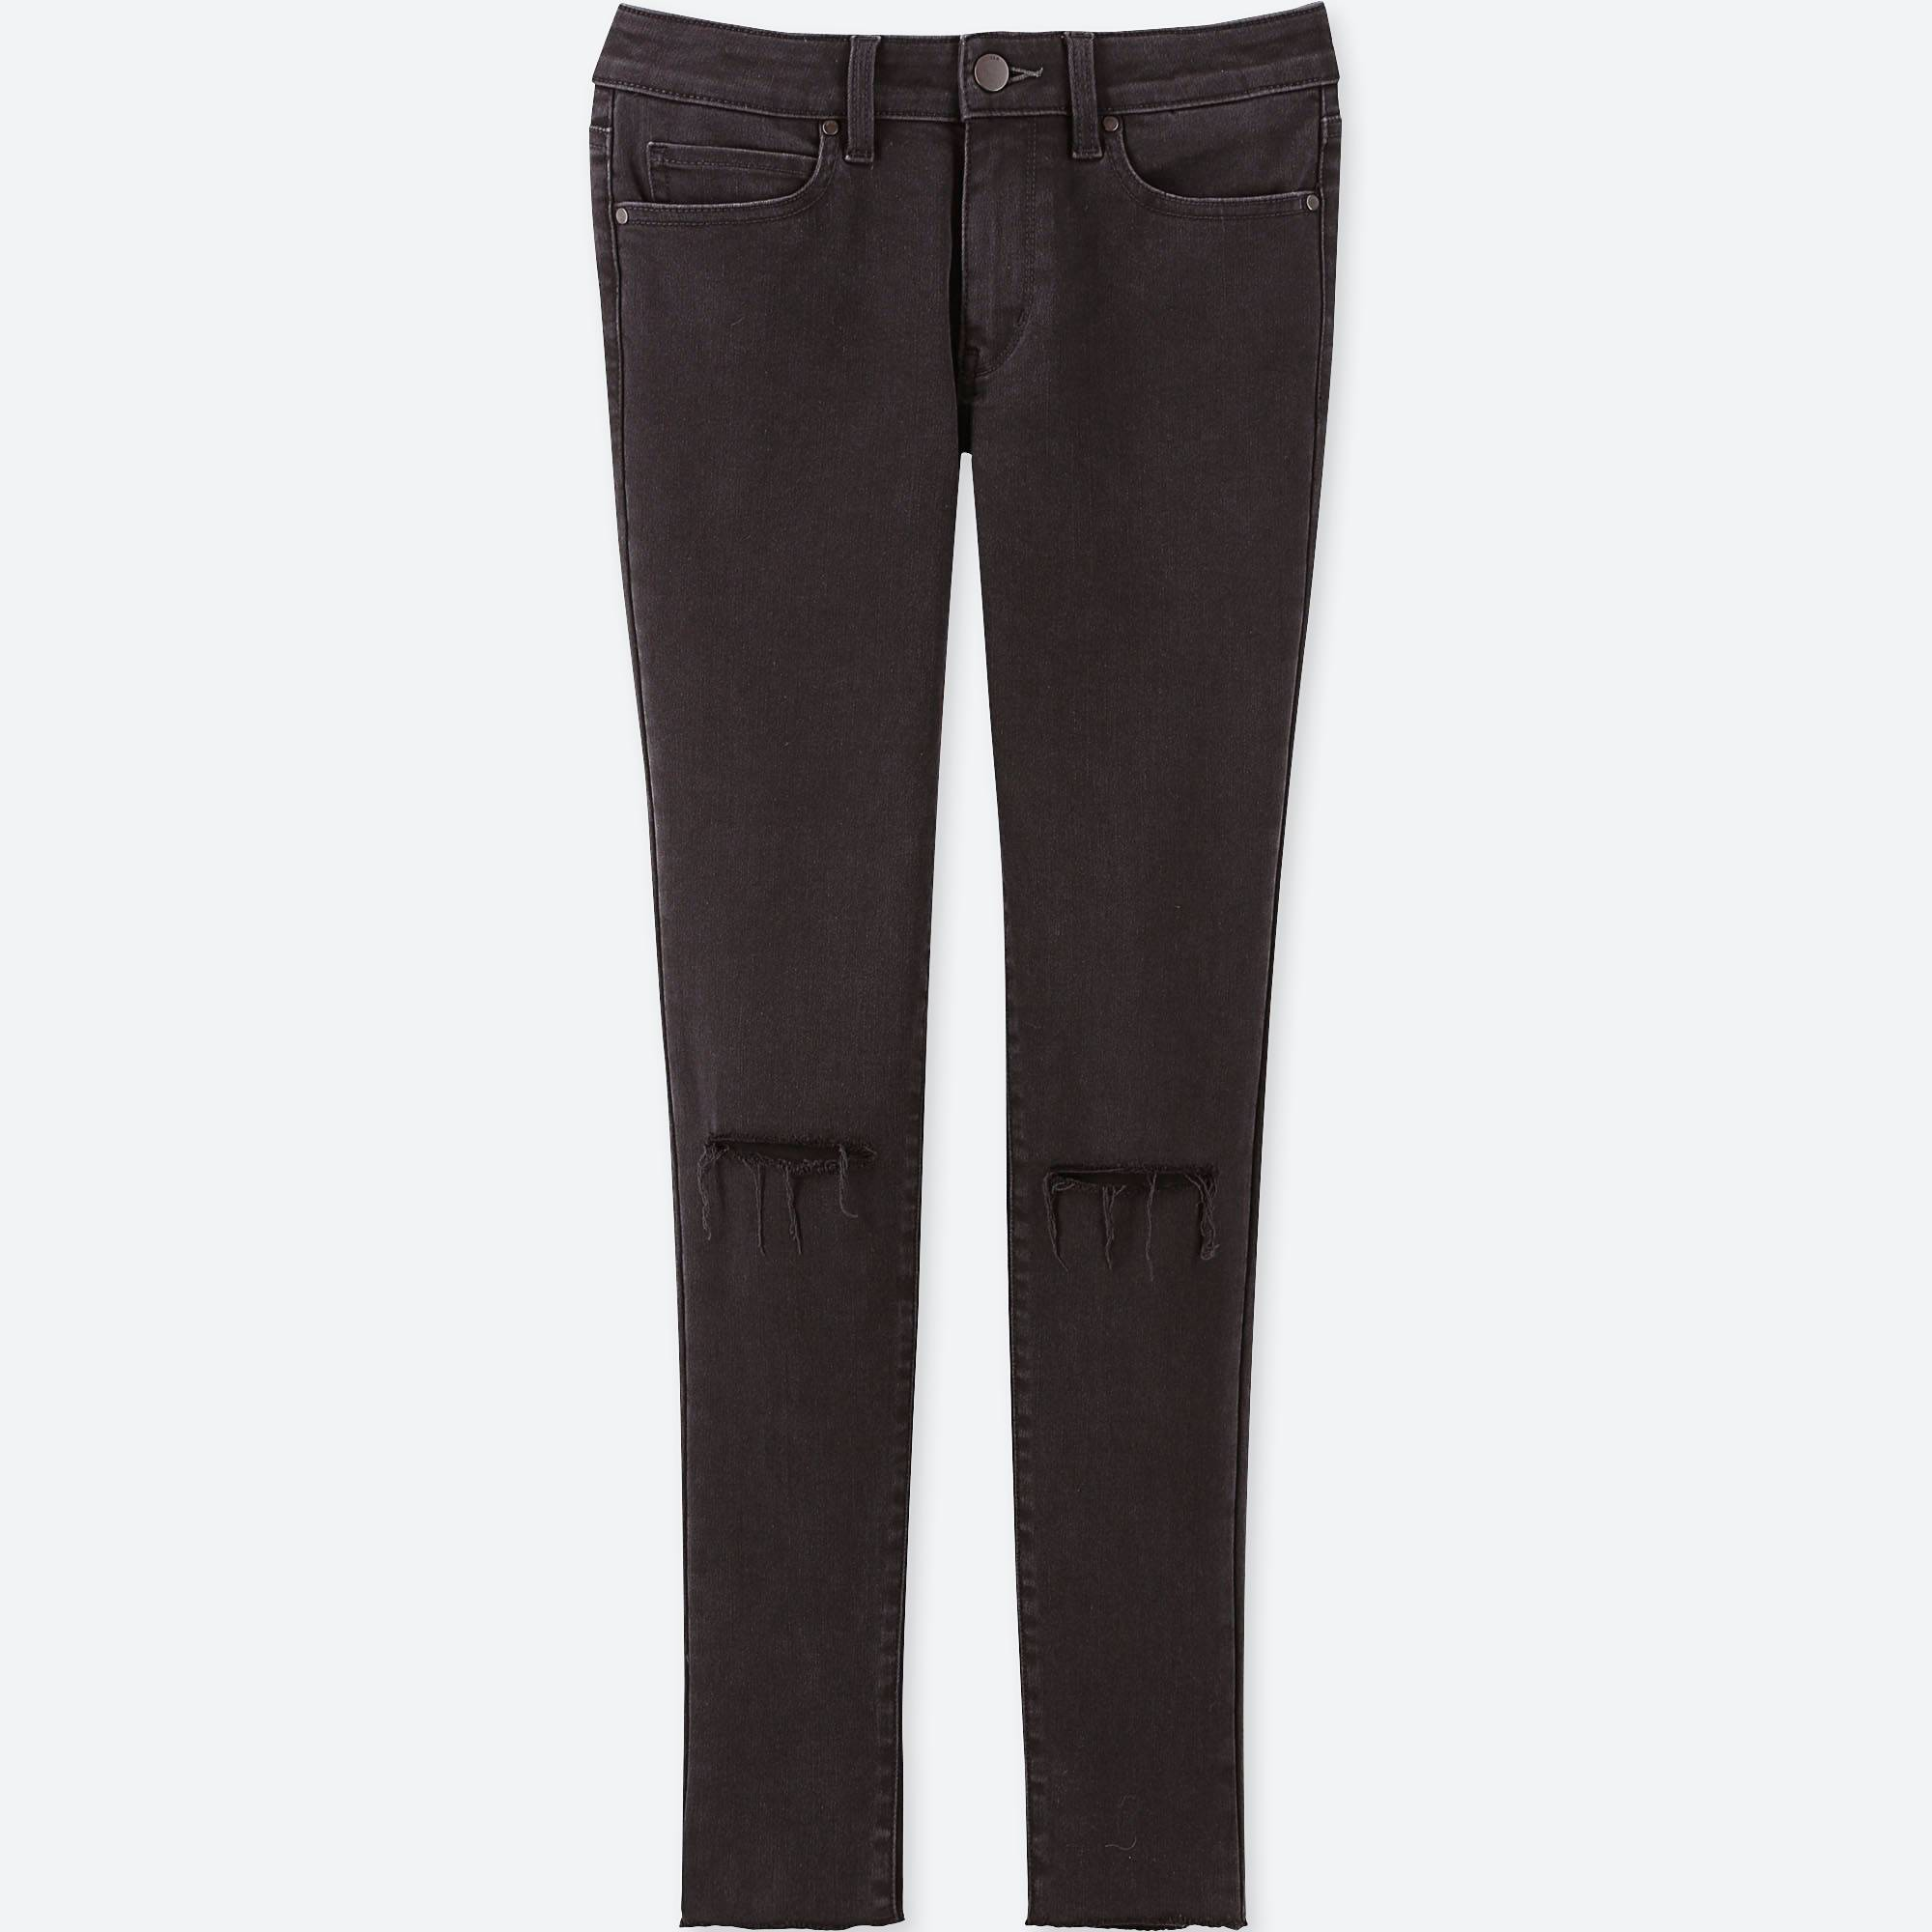 UNIQLO / Jeans women ultra stretch jeans